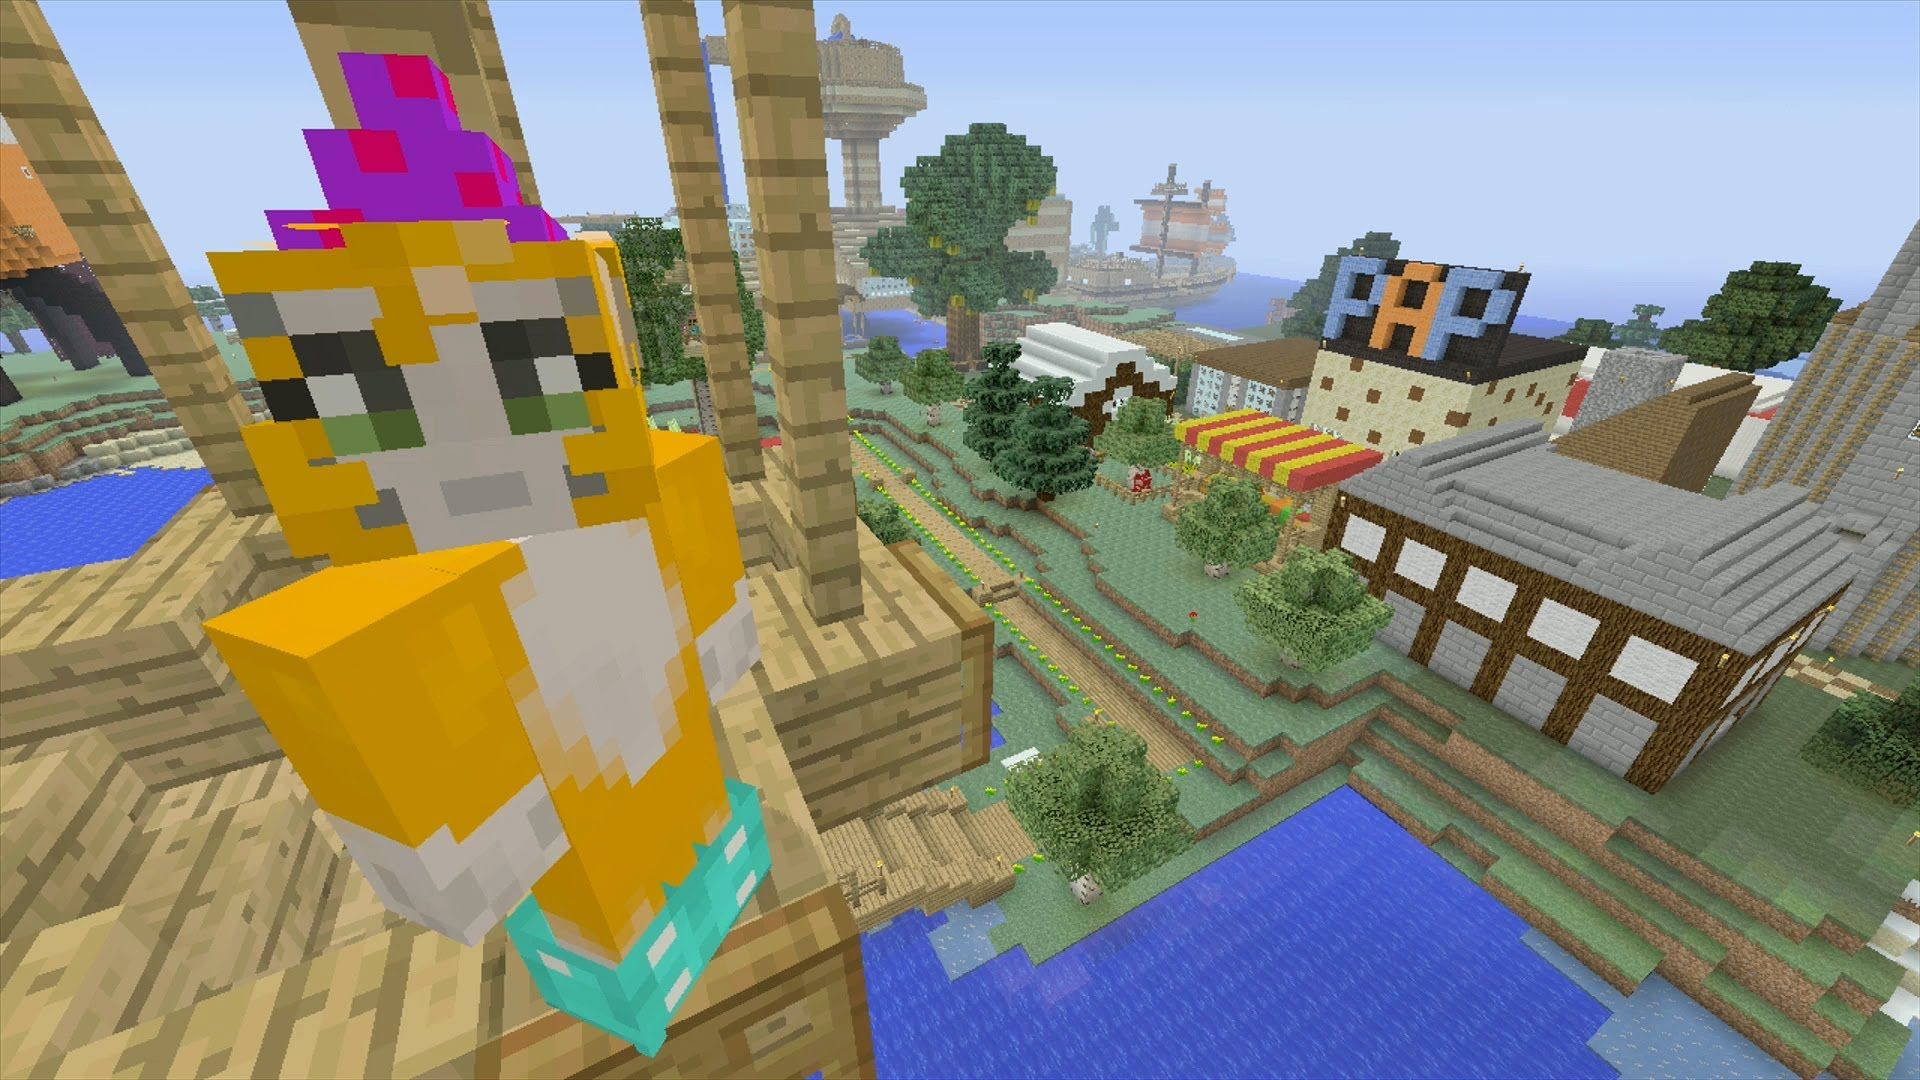 Minecraft world map stampys lovely world survival games shrimp minecraft world map stampys lovely world survival games shrimp pinterest survival and minecraft ideas gumiabroncs Choice Image